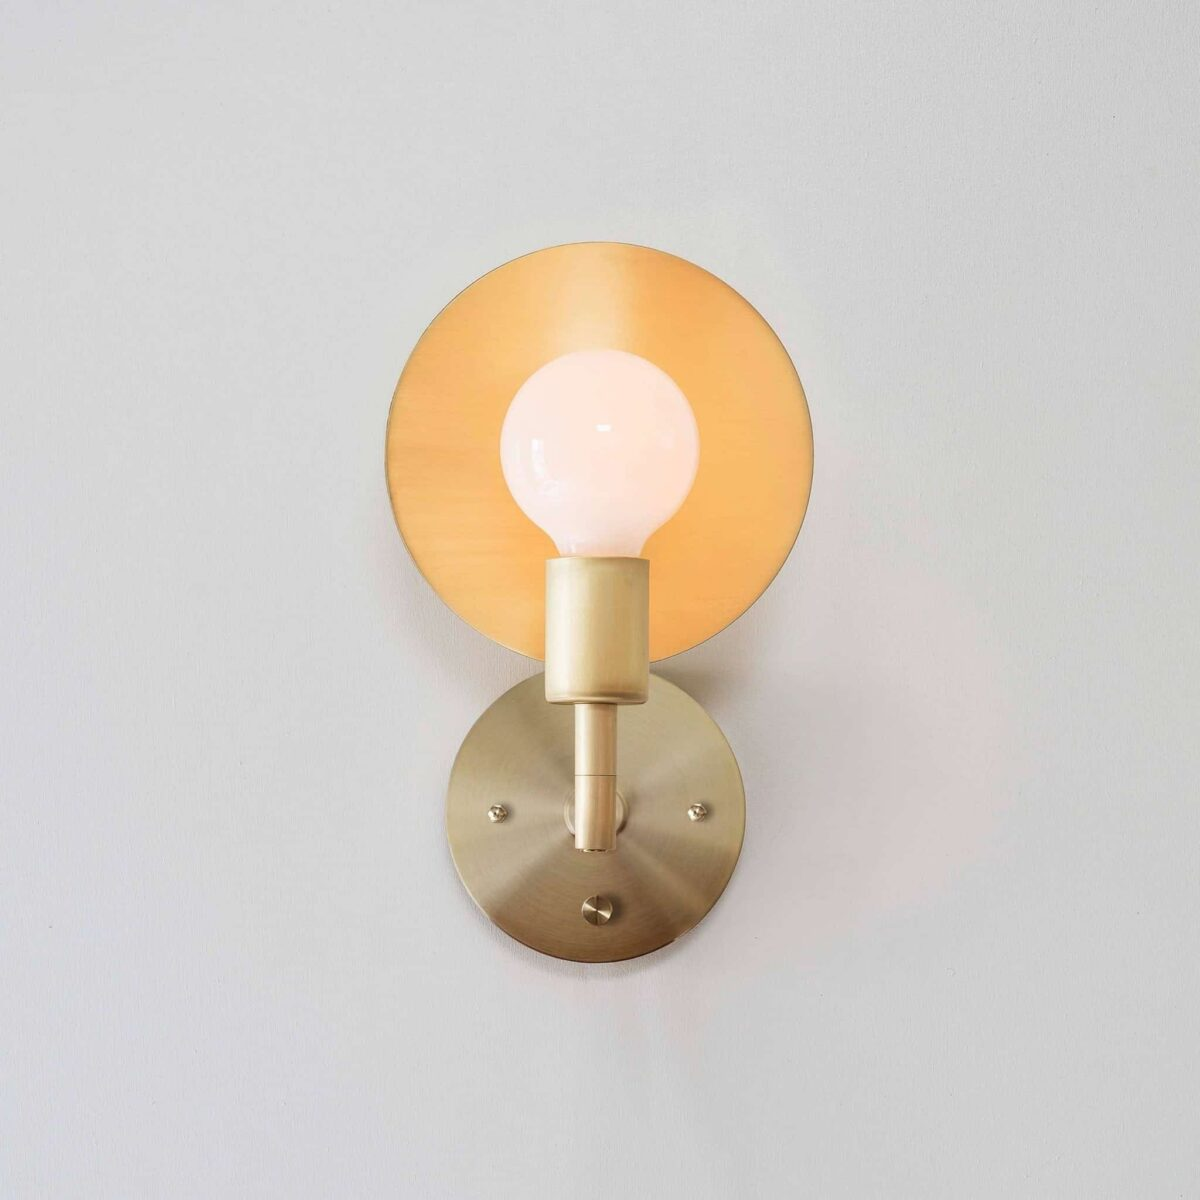 workstead-lighting-orbit-sconce-another-country-001